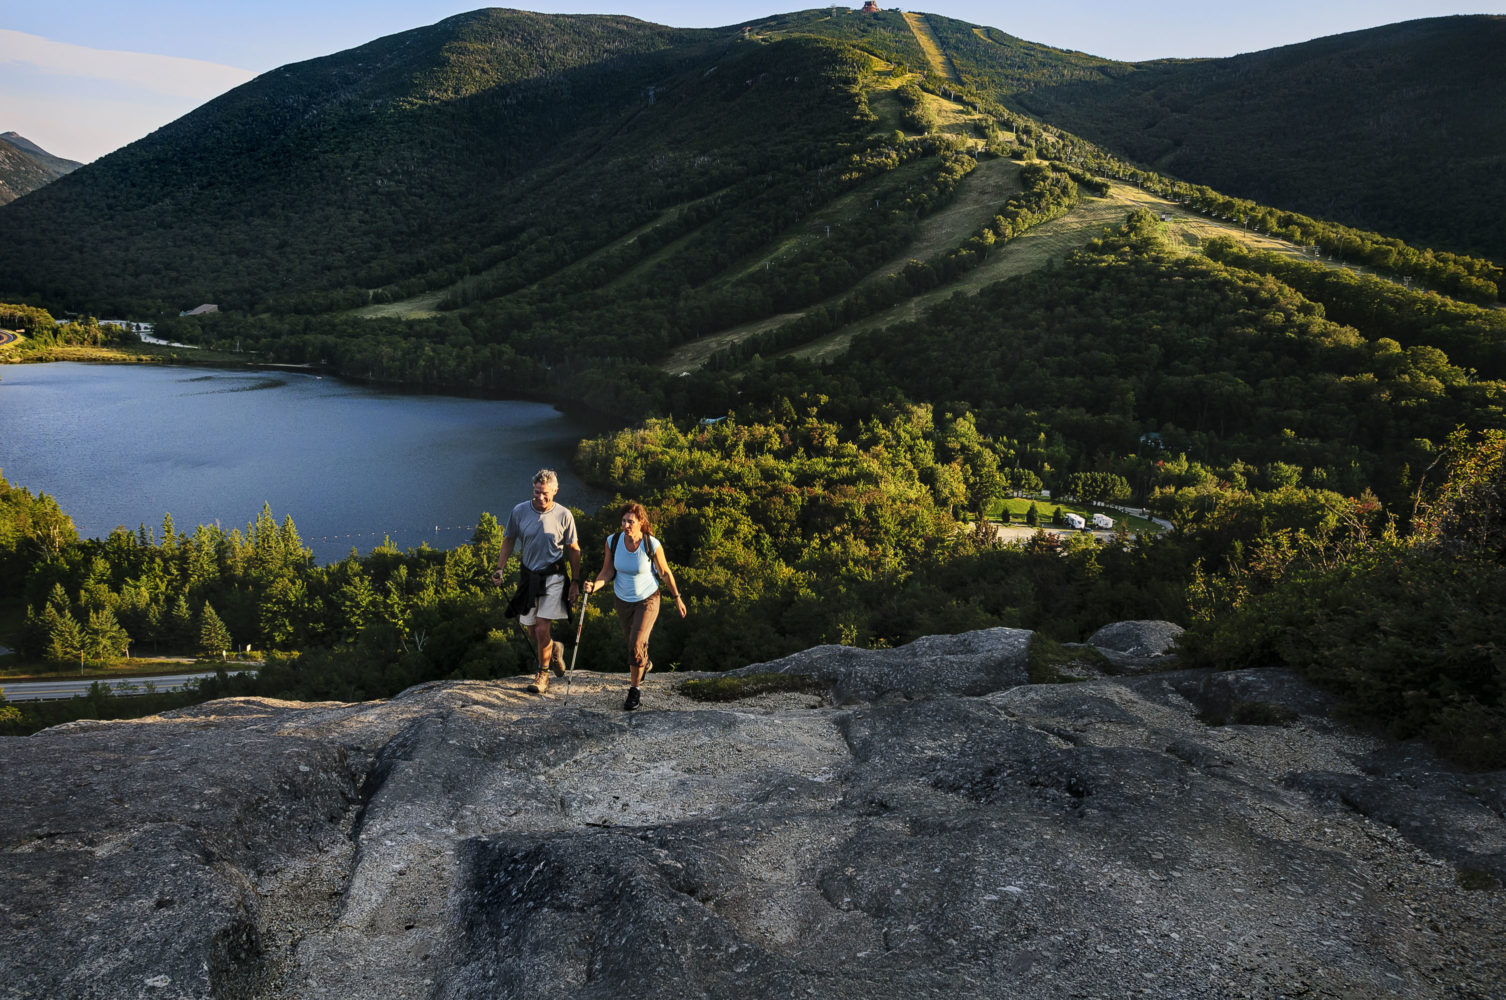 Wandern am Artist's Bluff / Bild: New Hampshire Division of Travel and Tourism Development